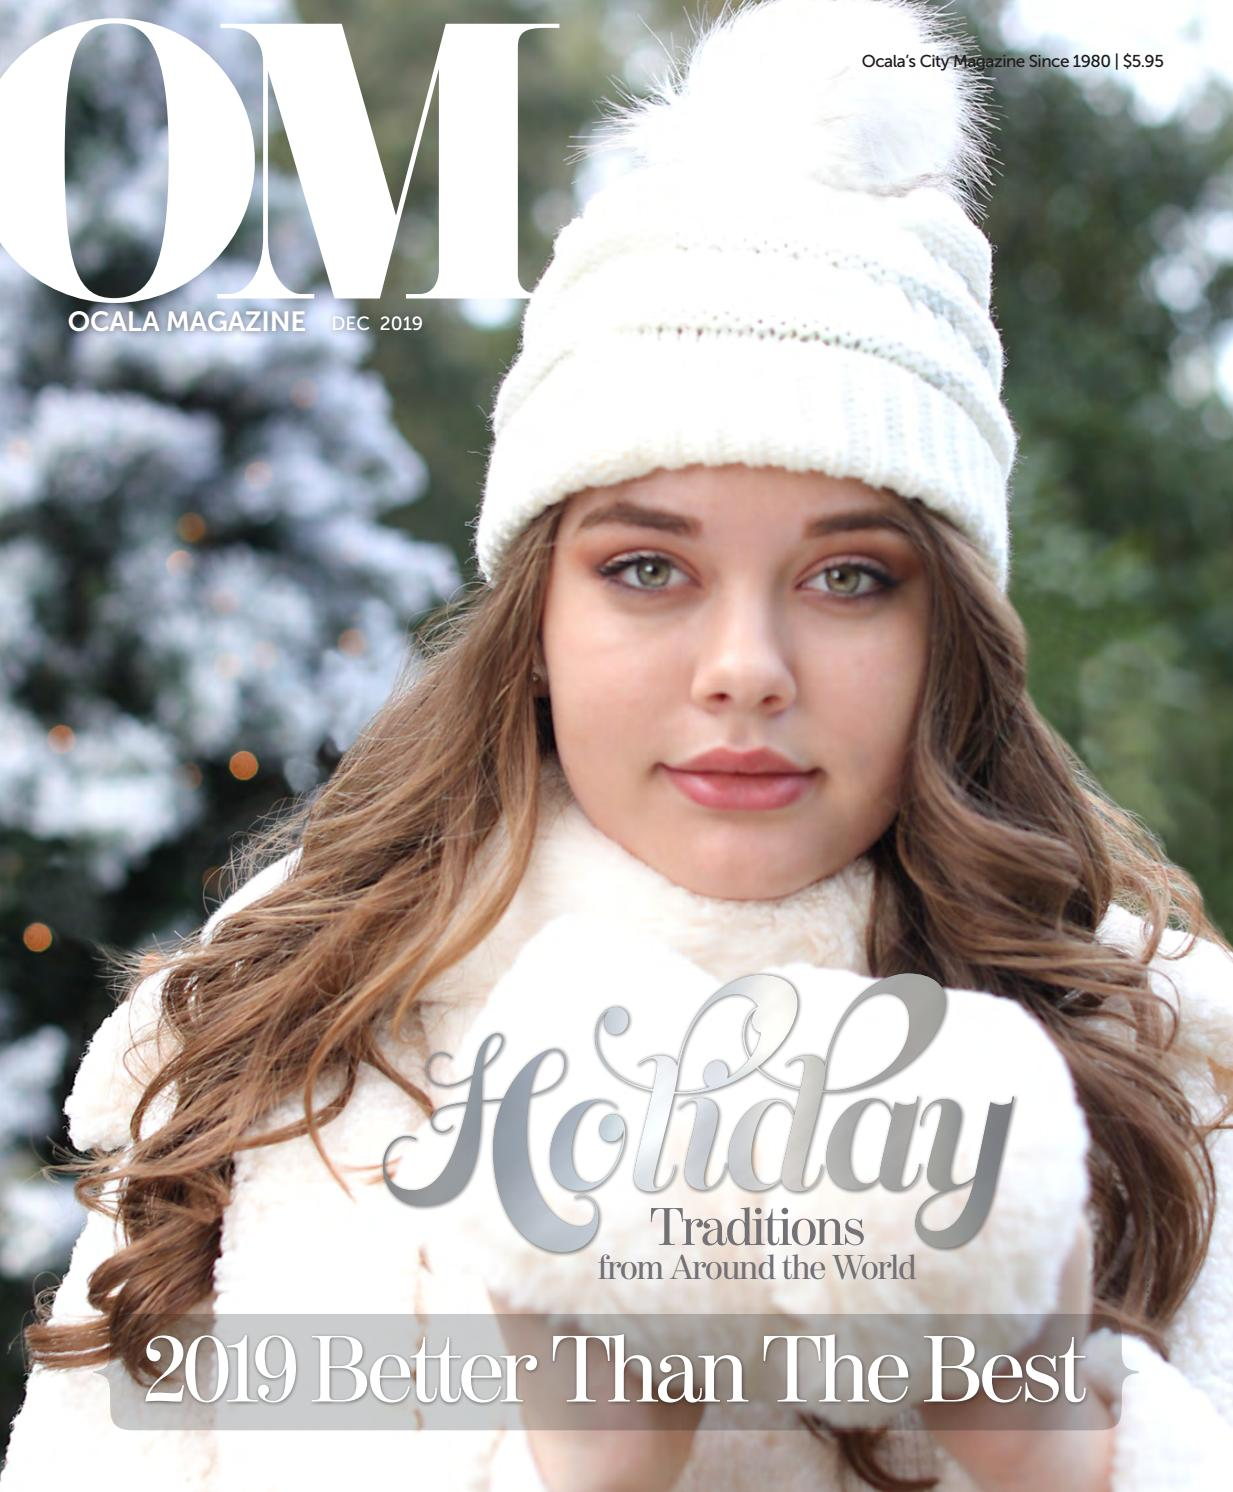 Ocala Magazine December 2019 Digital Edition By Ocalamag Issuu